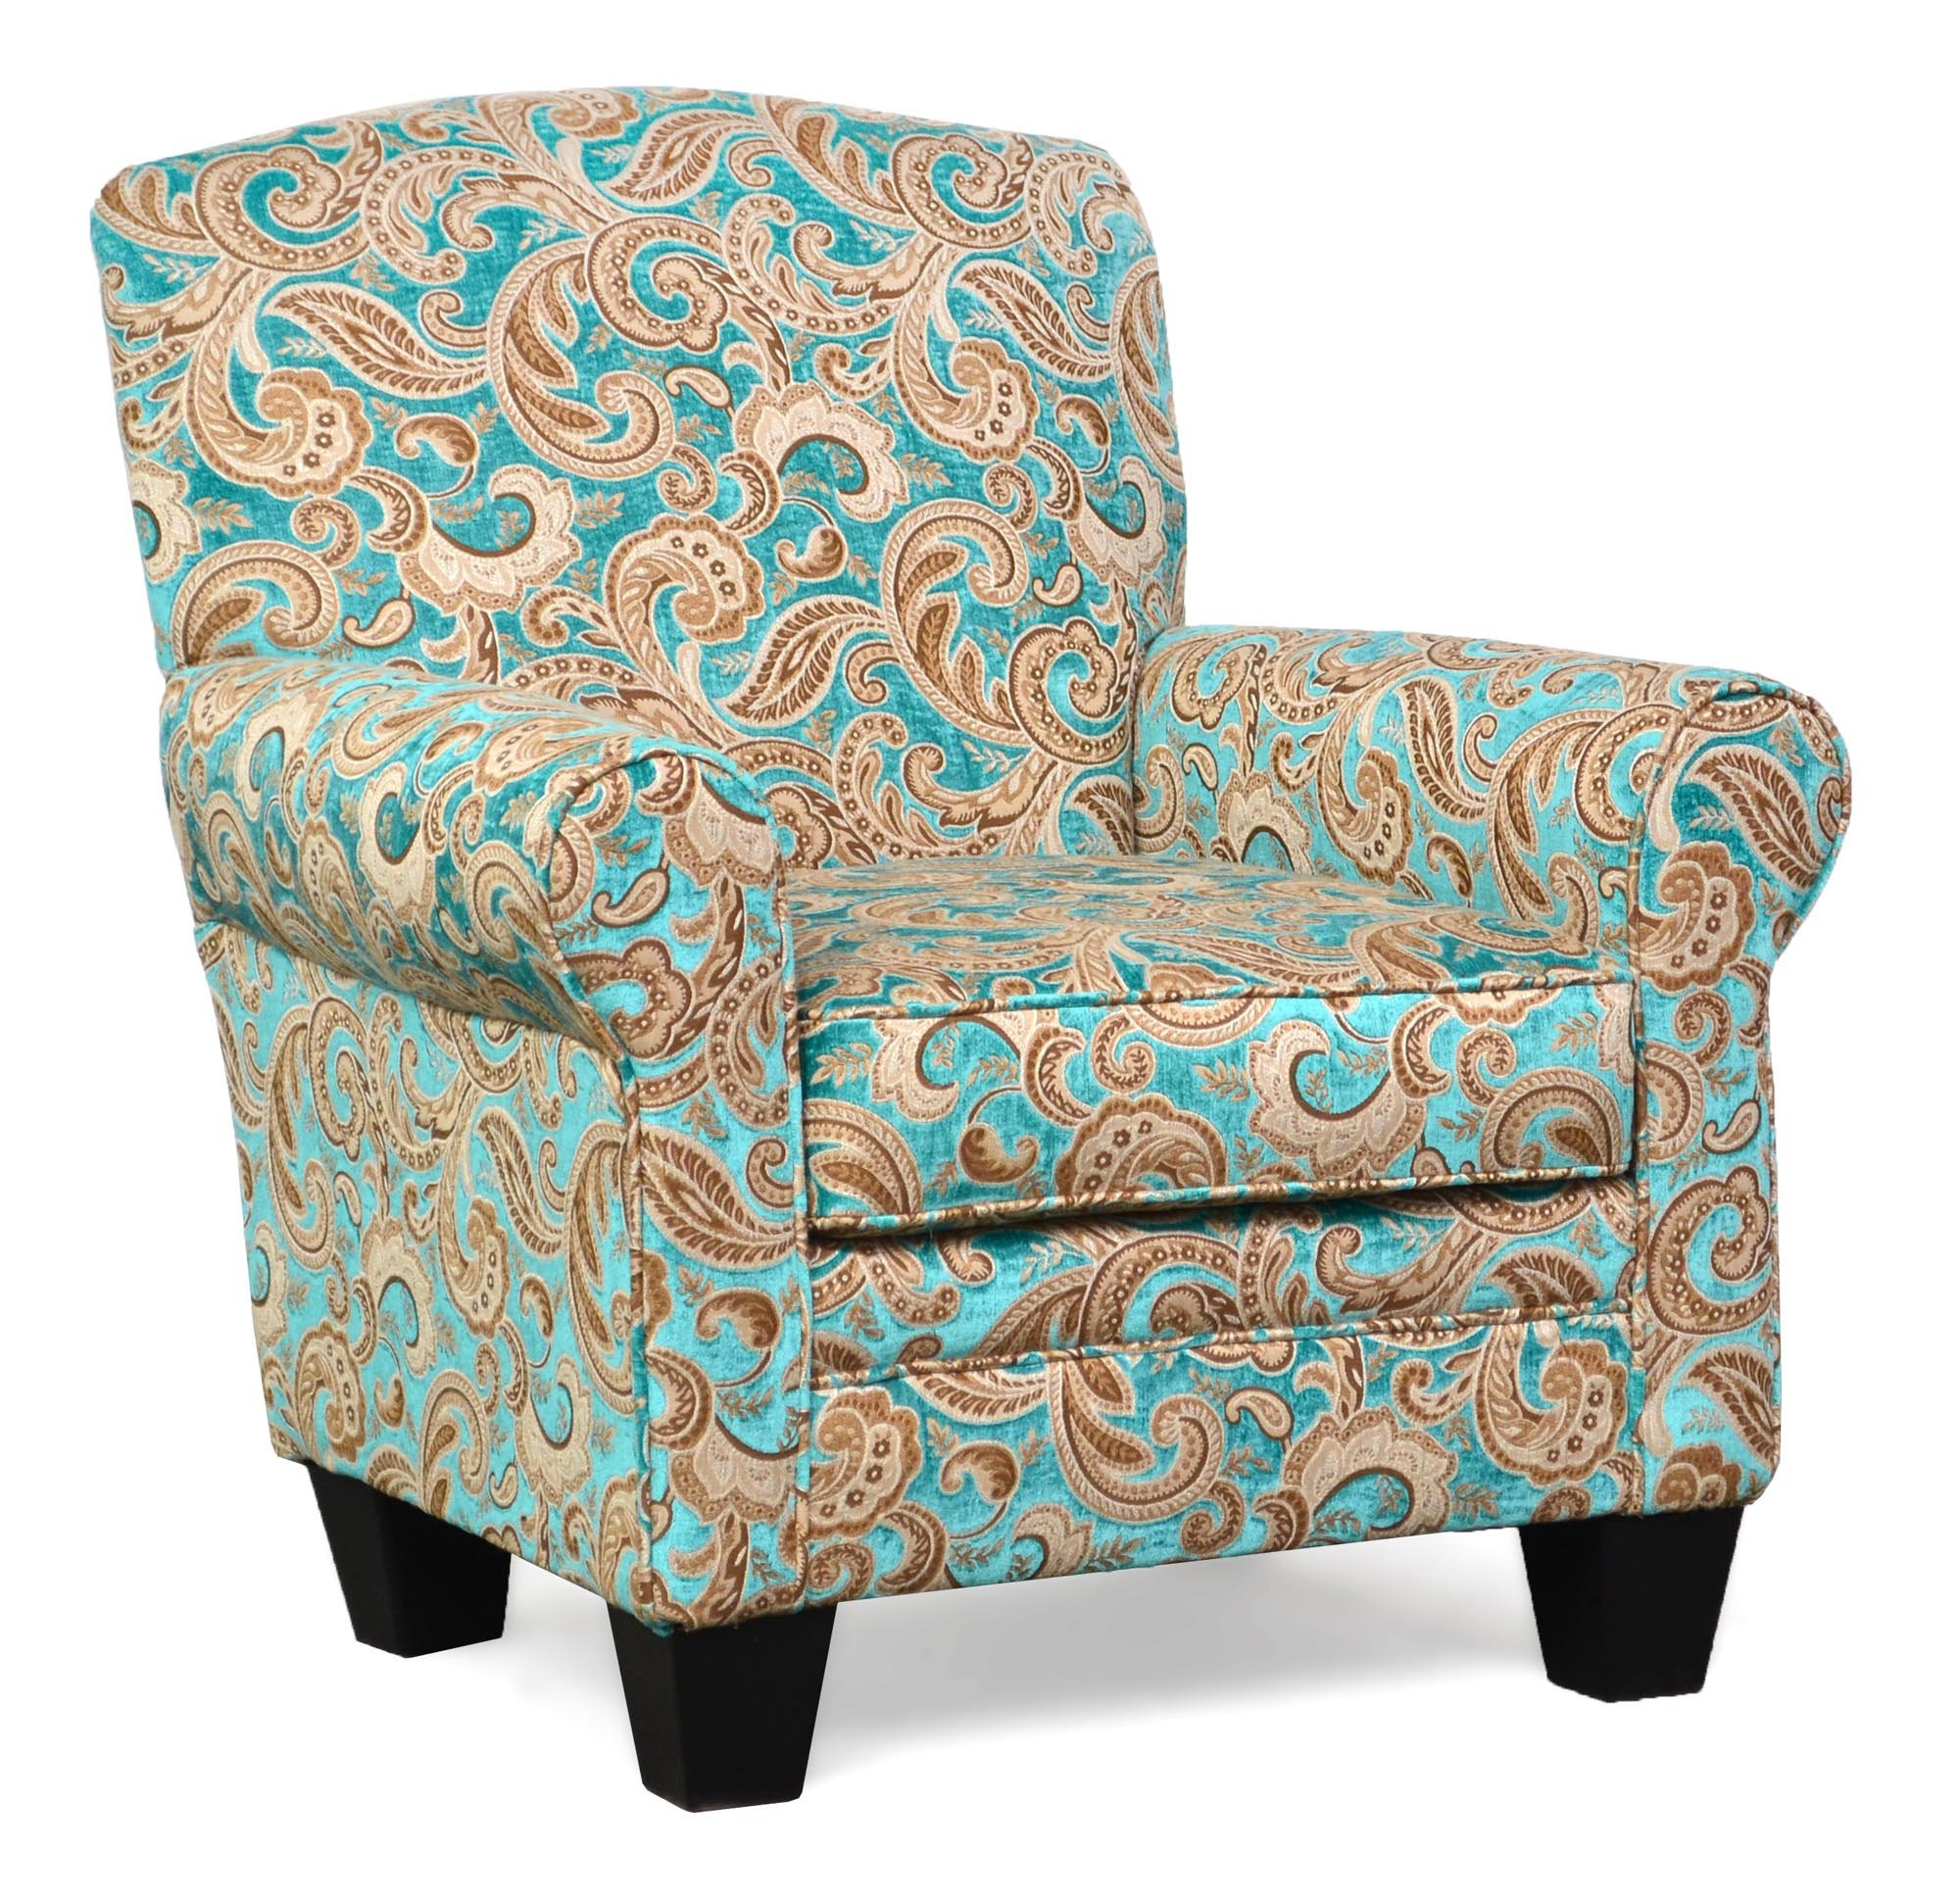 500 Quinn Turquoise Accent Chair